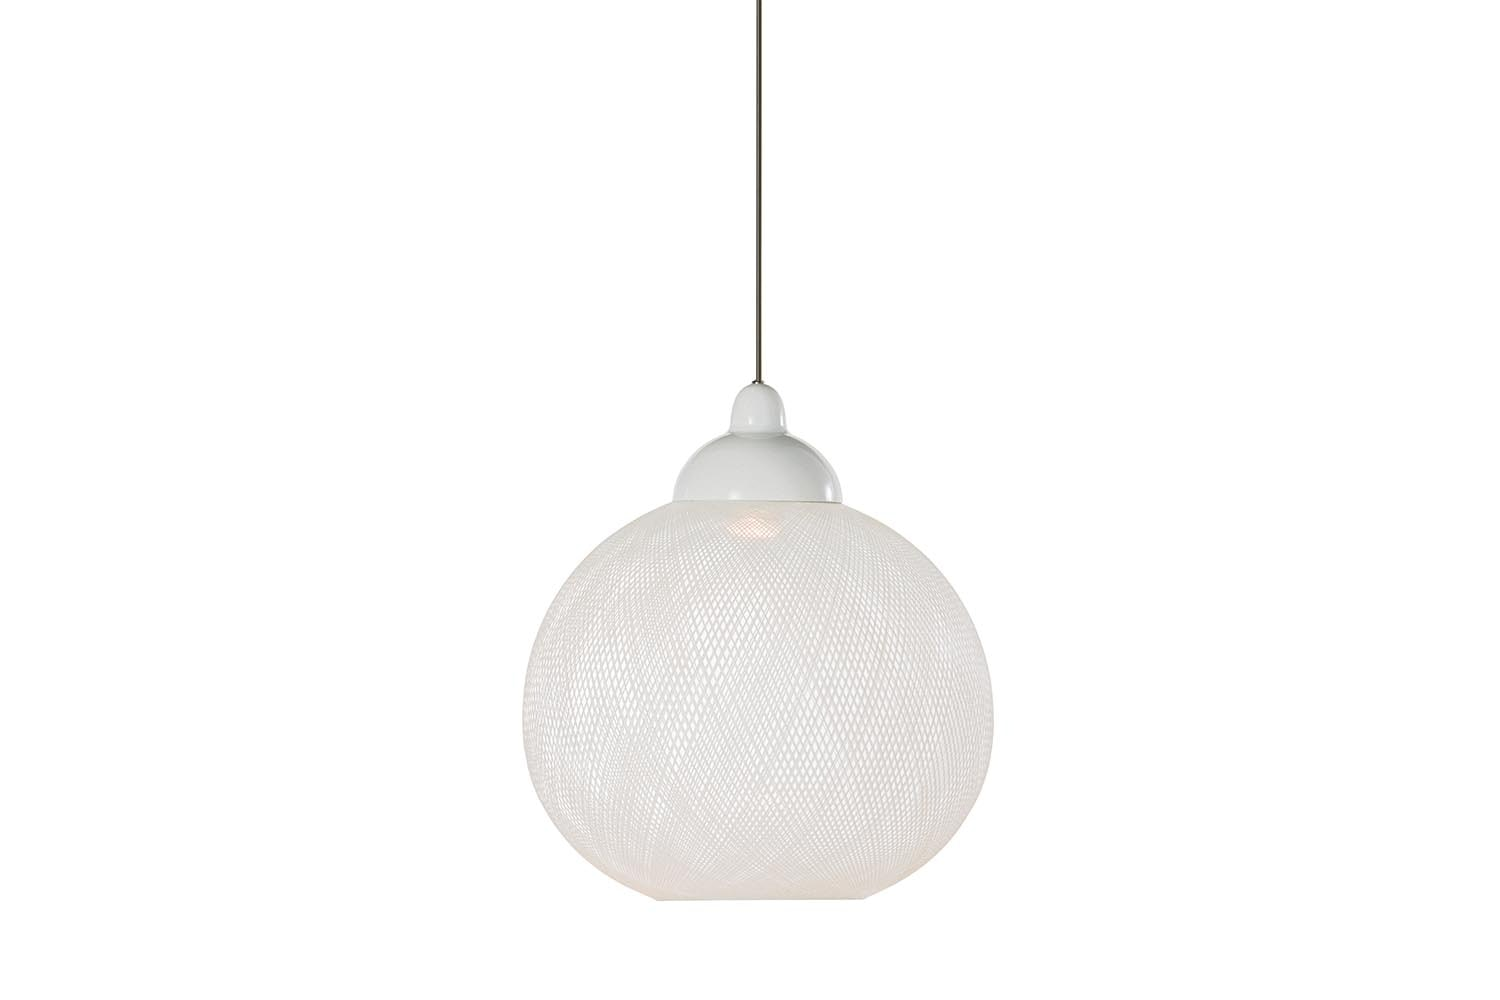 Non Random Small White Suspension Lamp by Bertjan Pot for Moooi